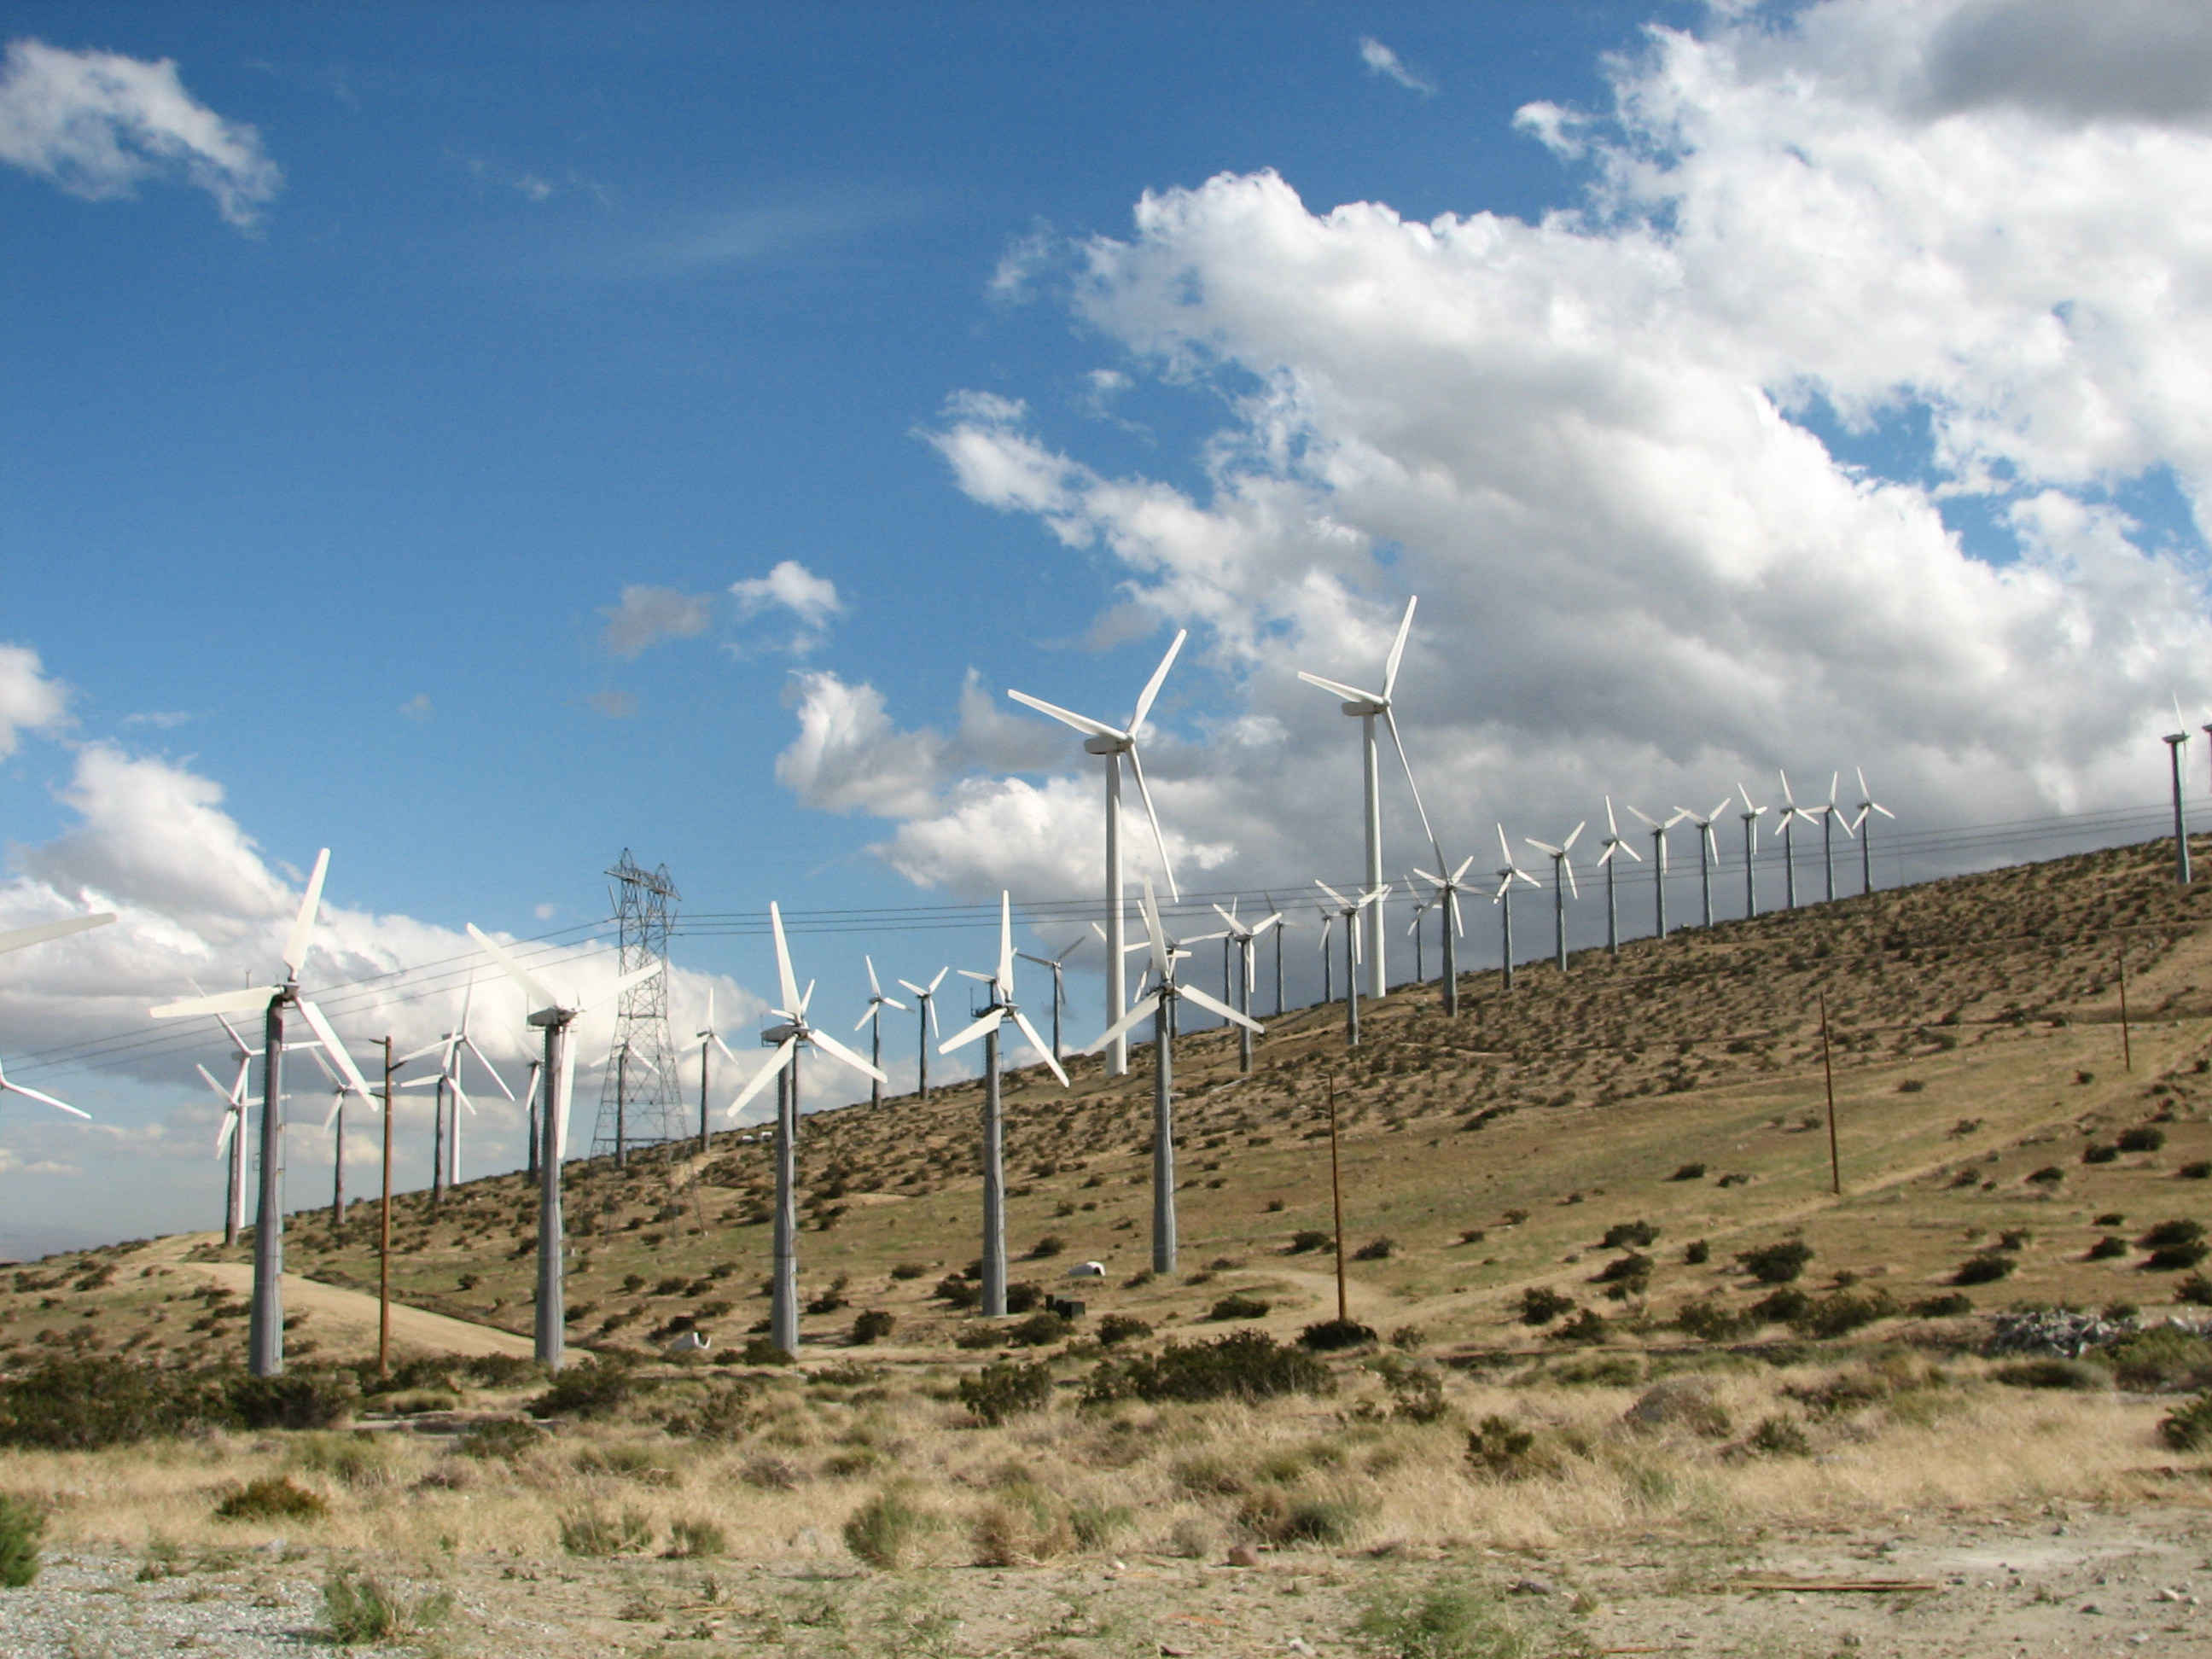 San Gorgonio Pass Wind Farm Wikipedia How Do Turbines Generate Electricity Video Energy Powers